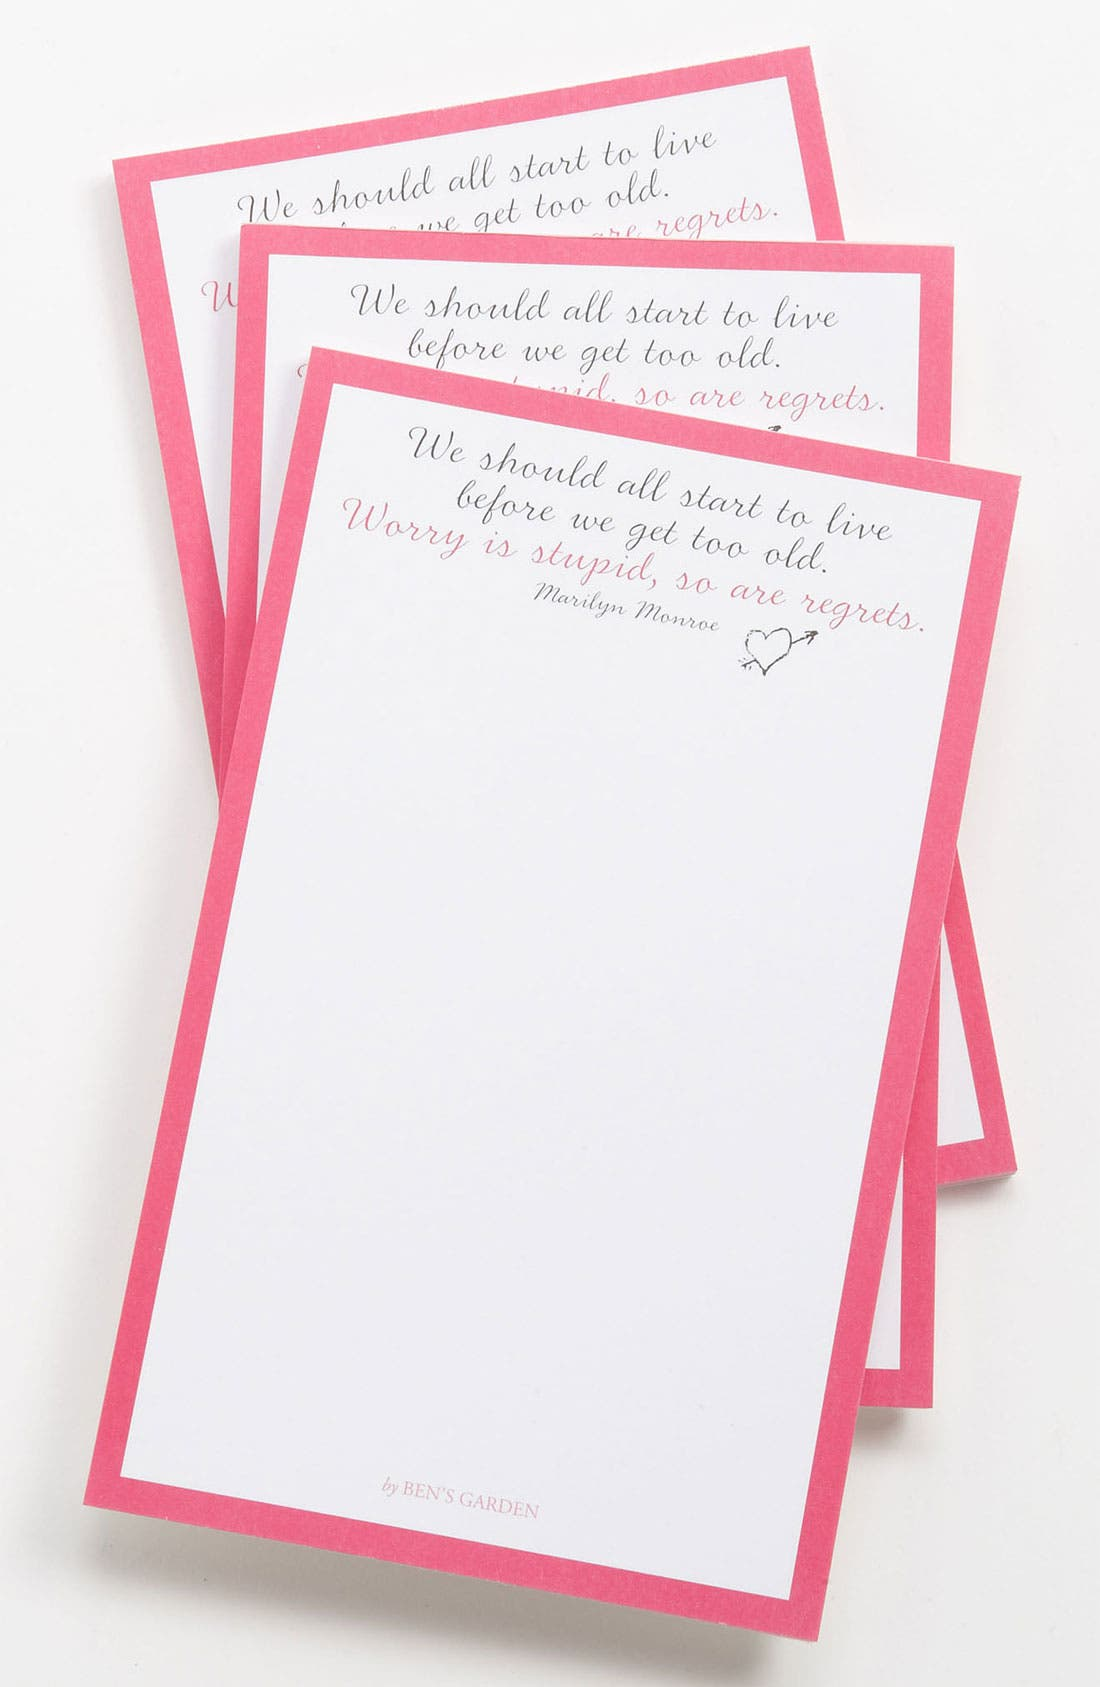 Alternate Image 1 Selected - Ben's Garden 'We All Should Start to Live' Notepads (3-Pack)